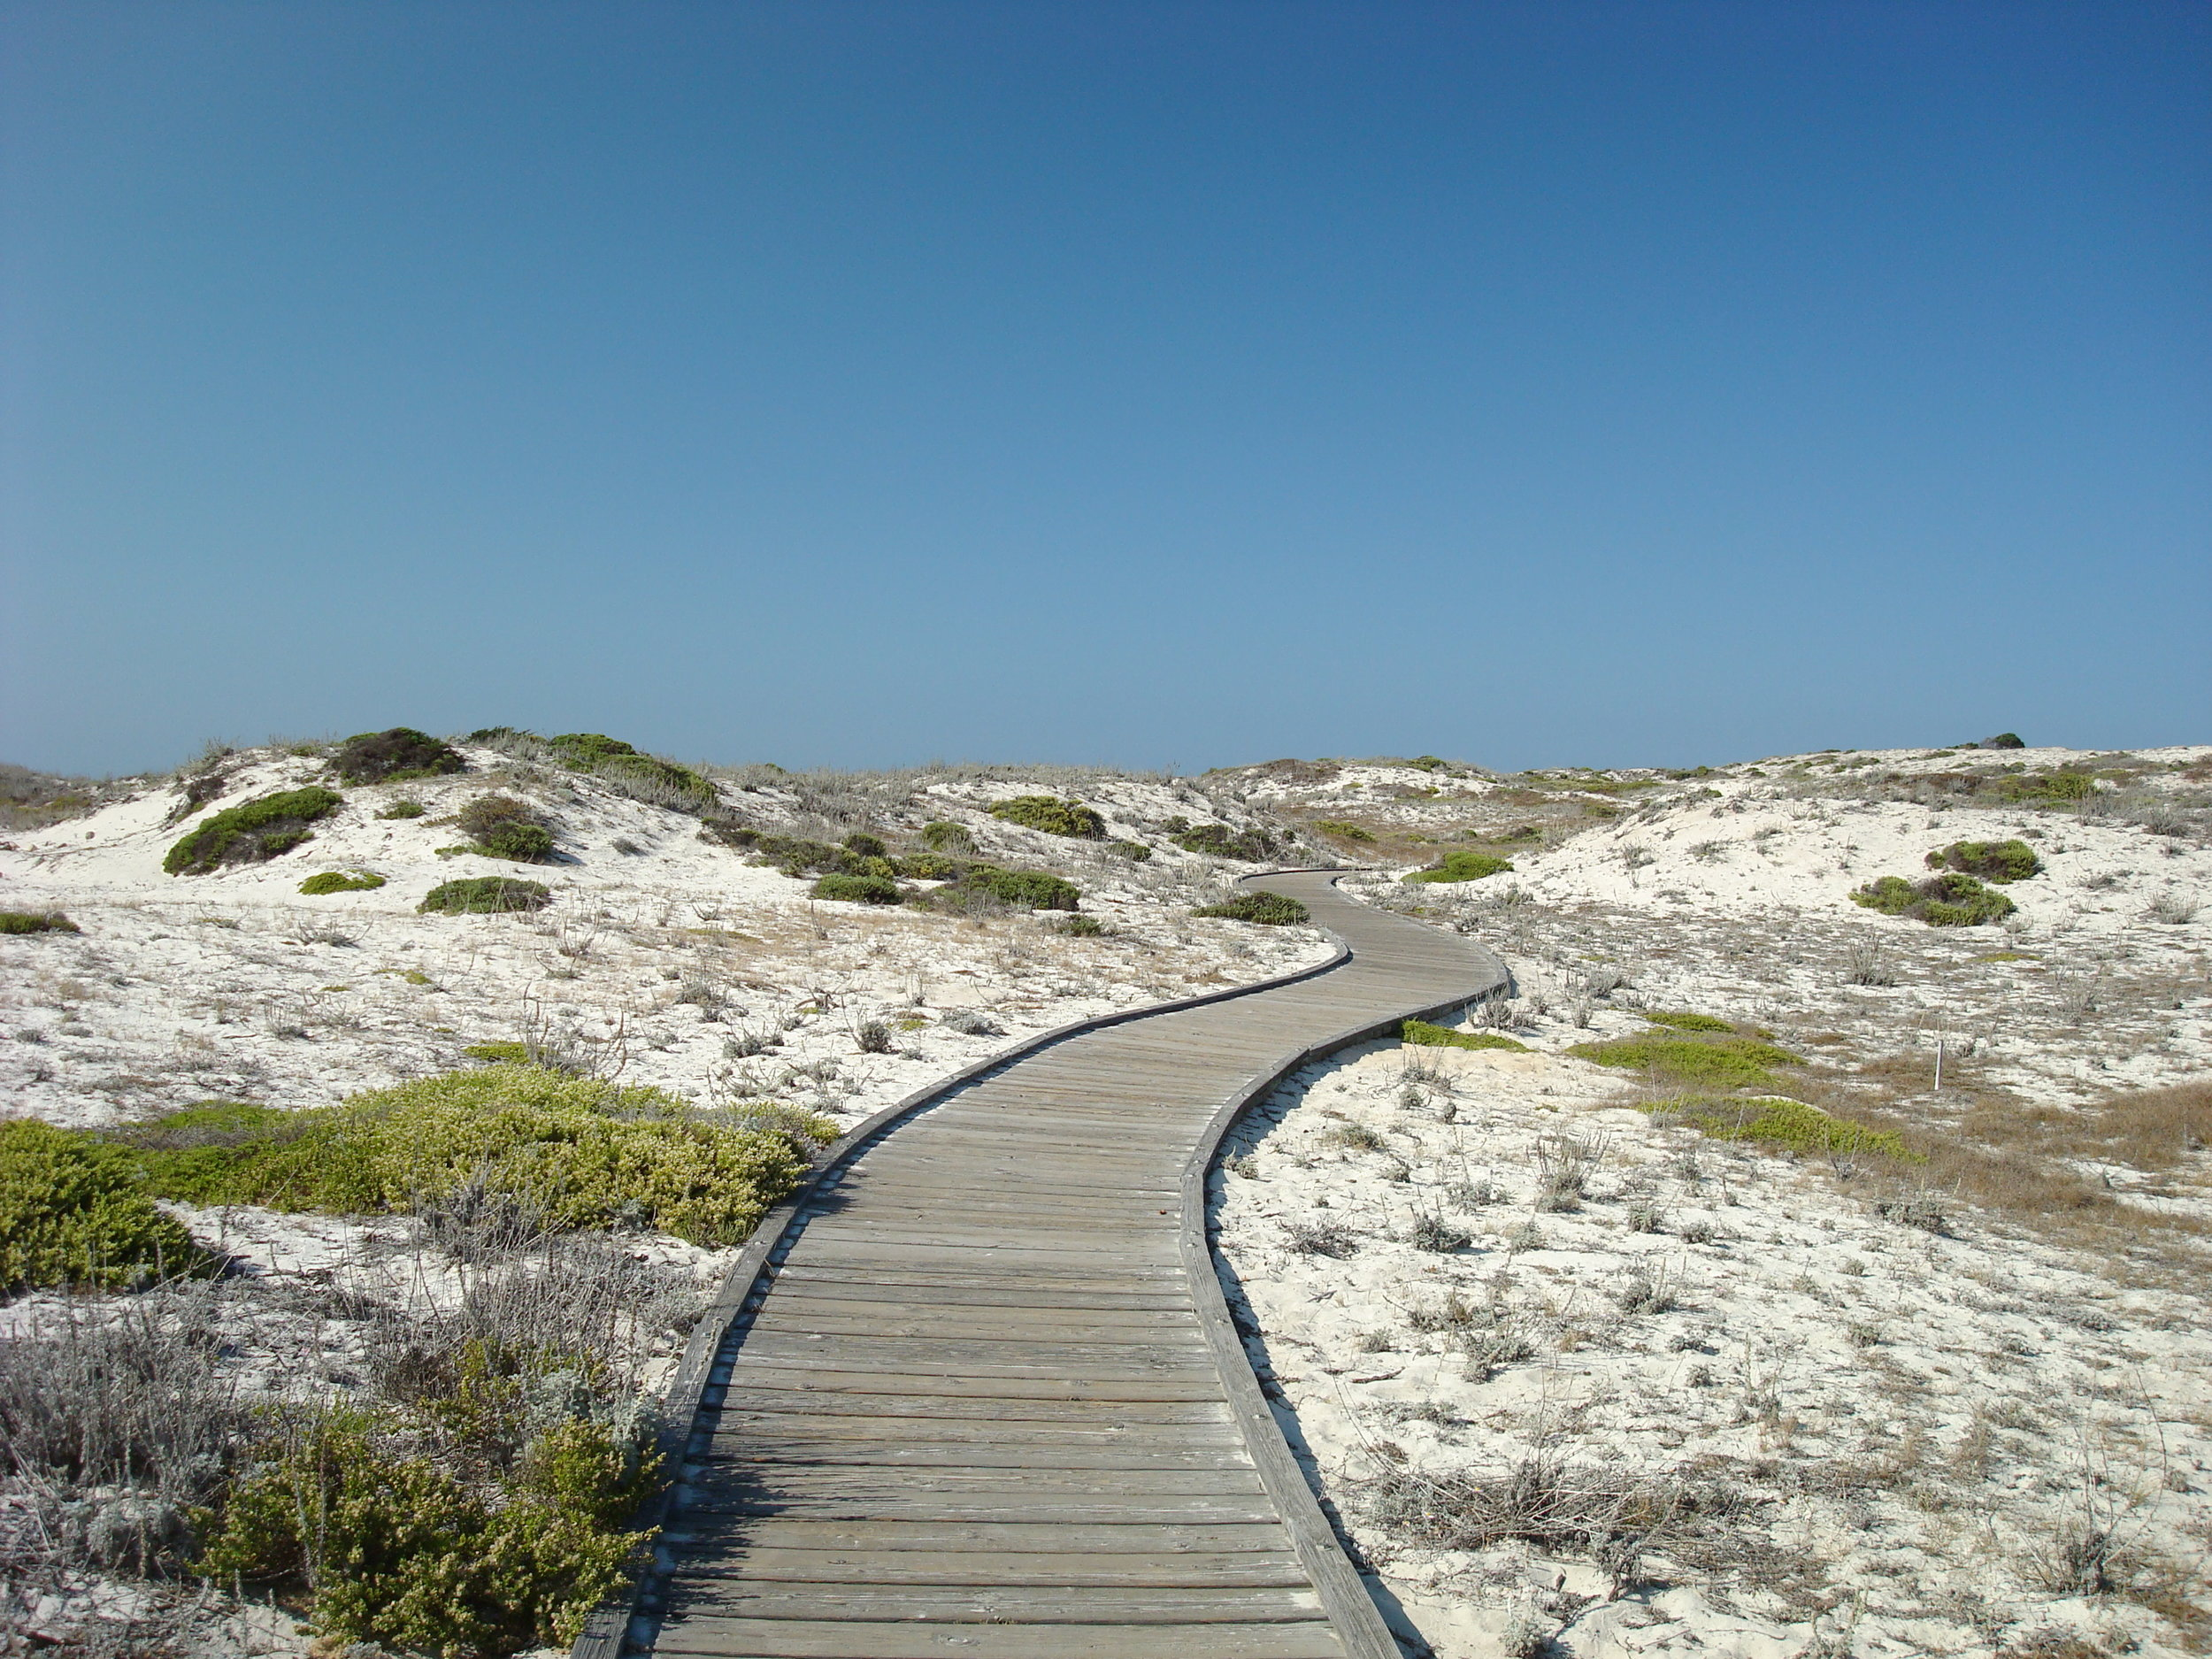 Wooden_pathway_at_the_Asilomar_State_Beach.jpg